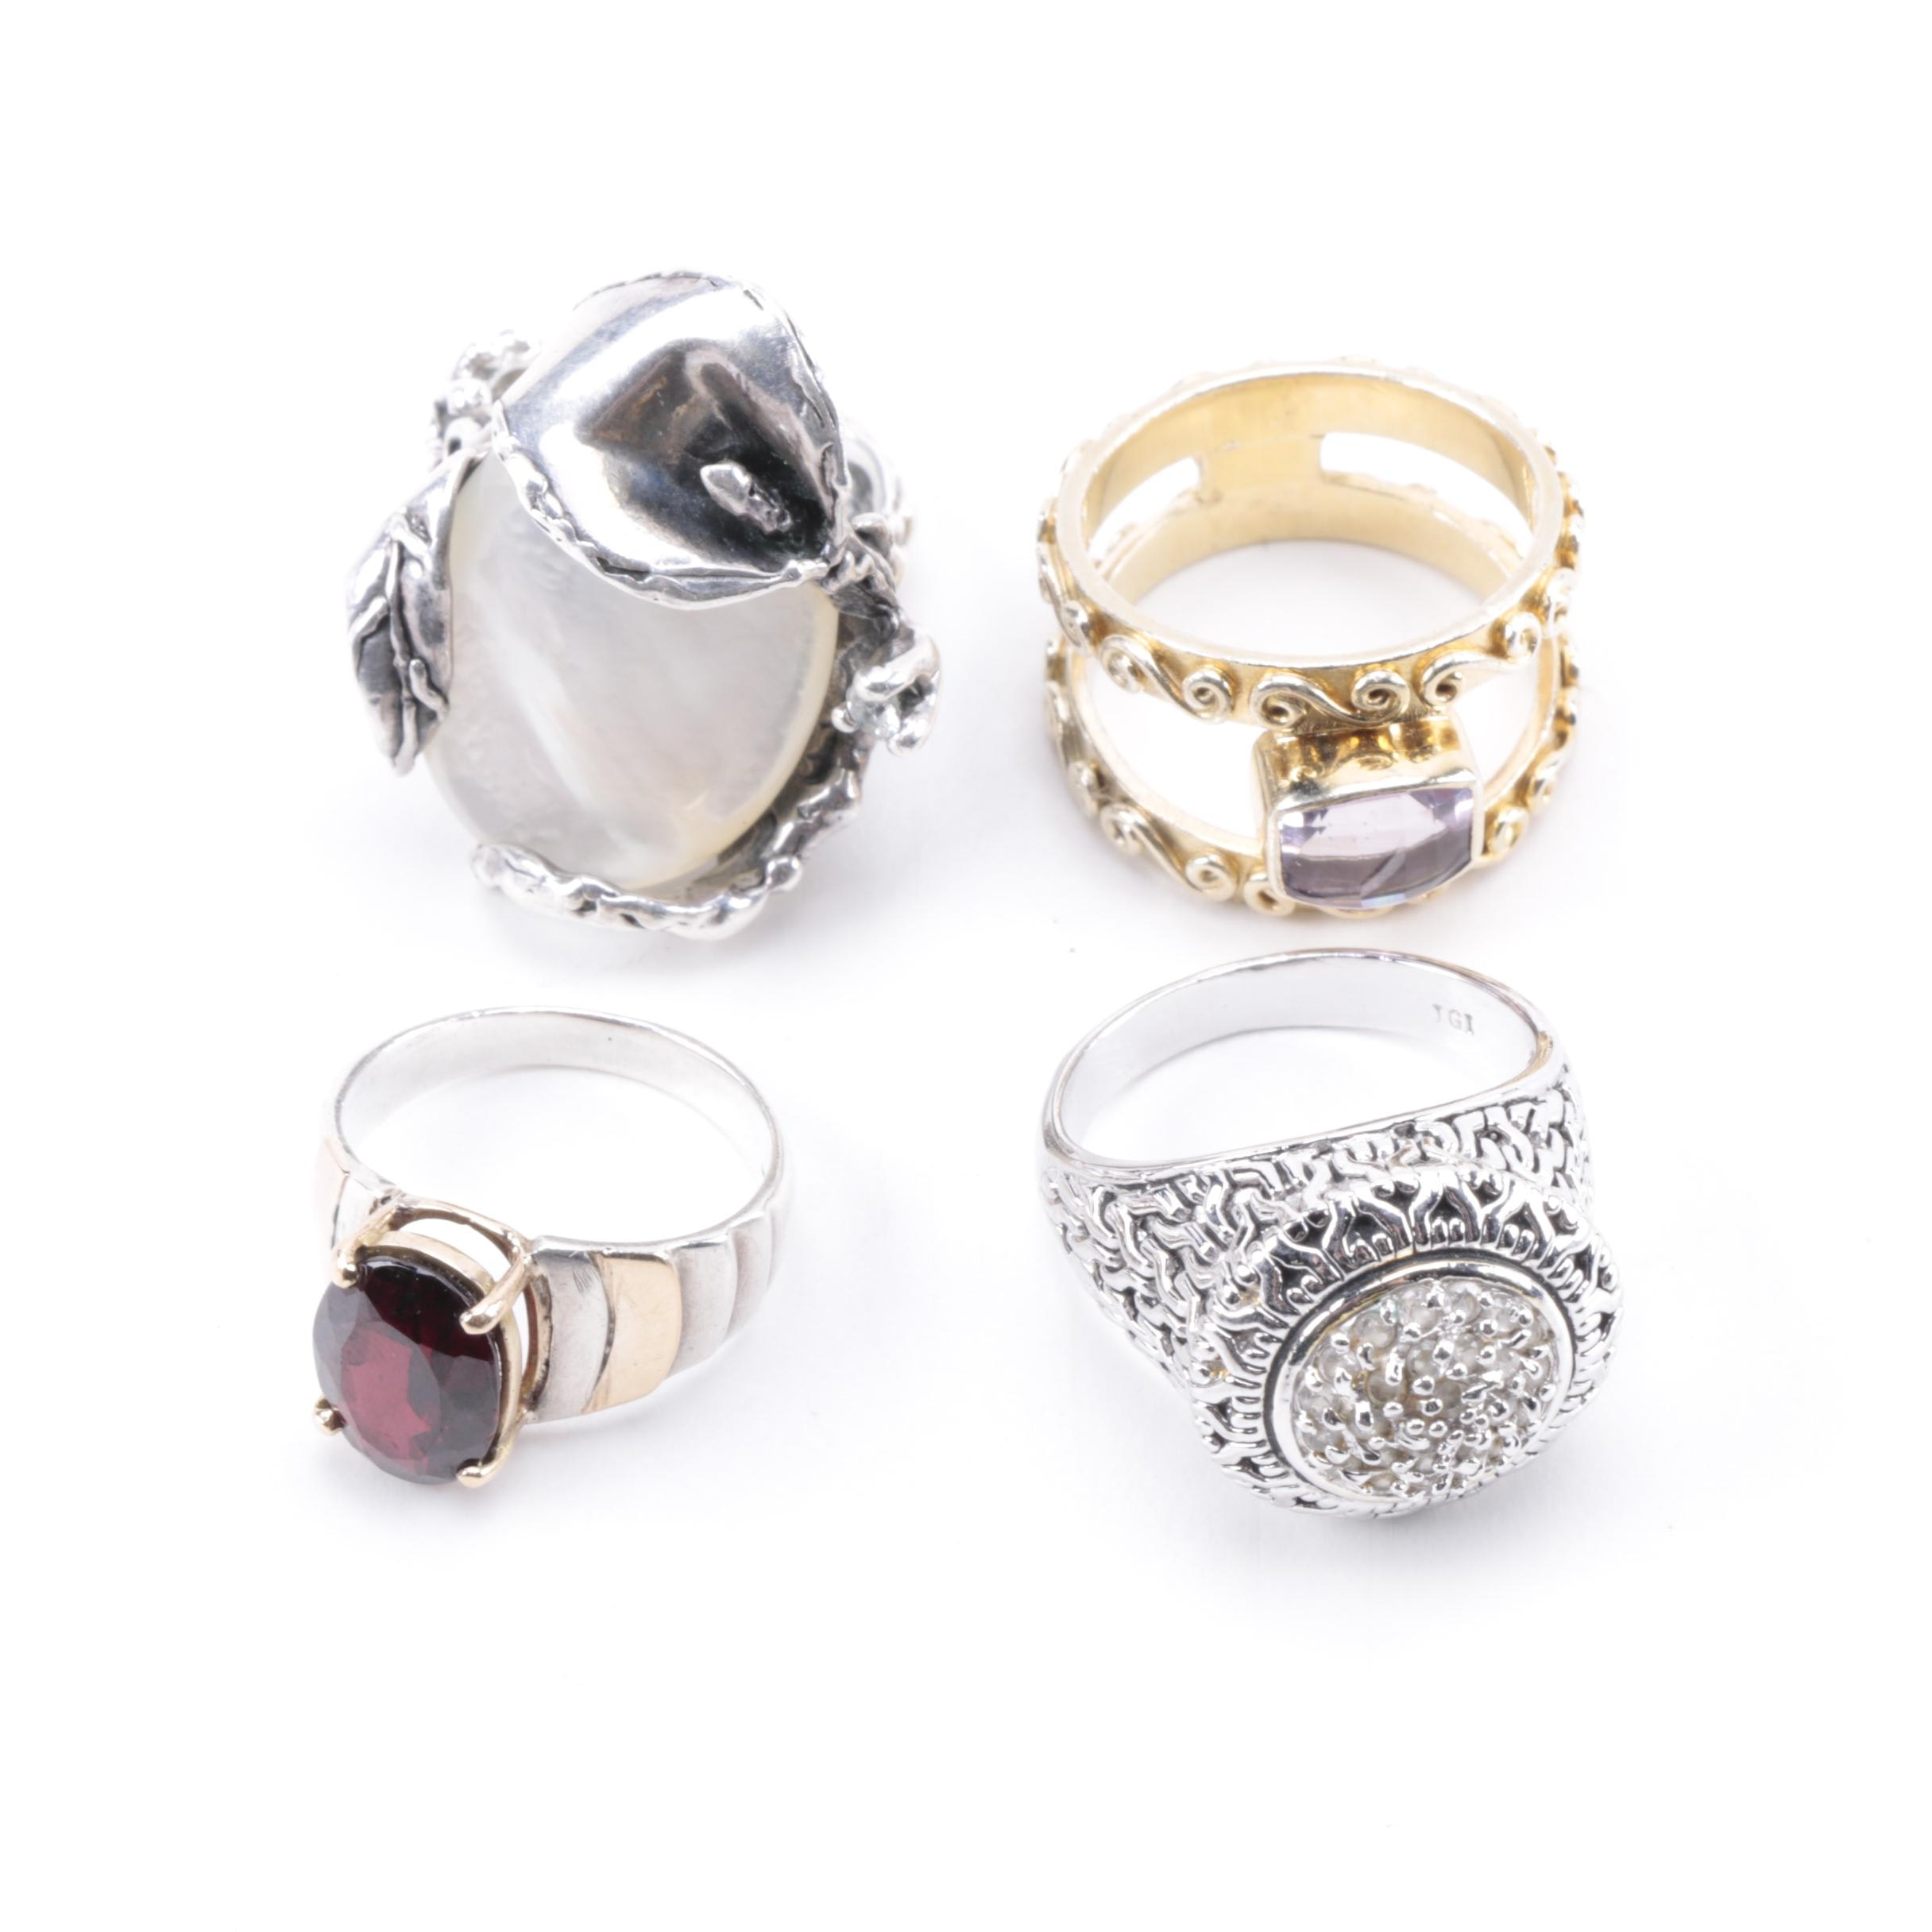 Sterling Silver Rings with Accents Including Sajen